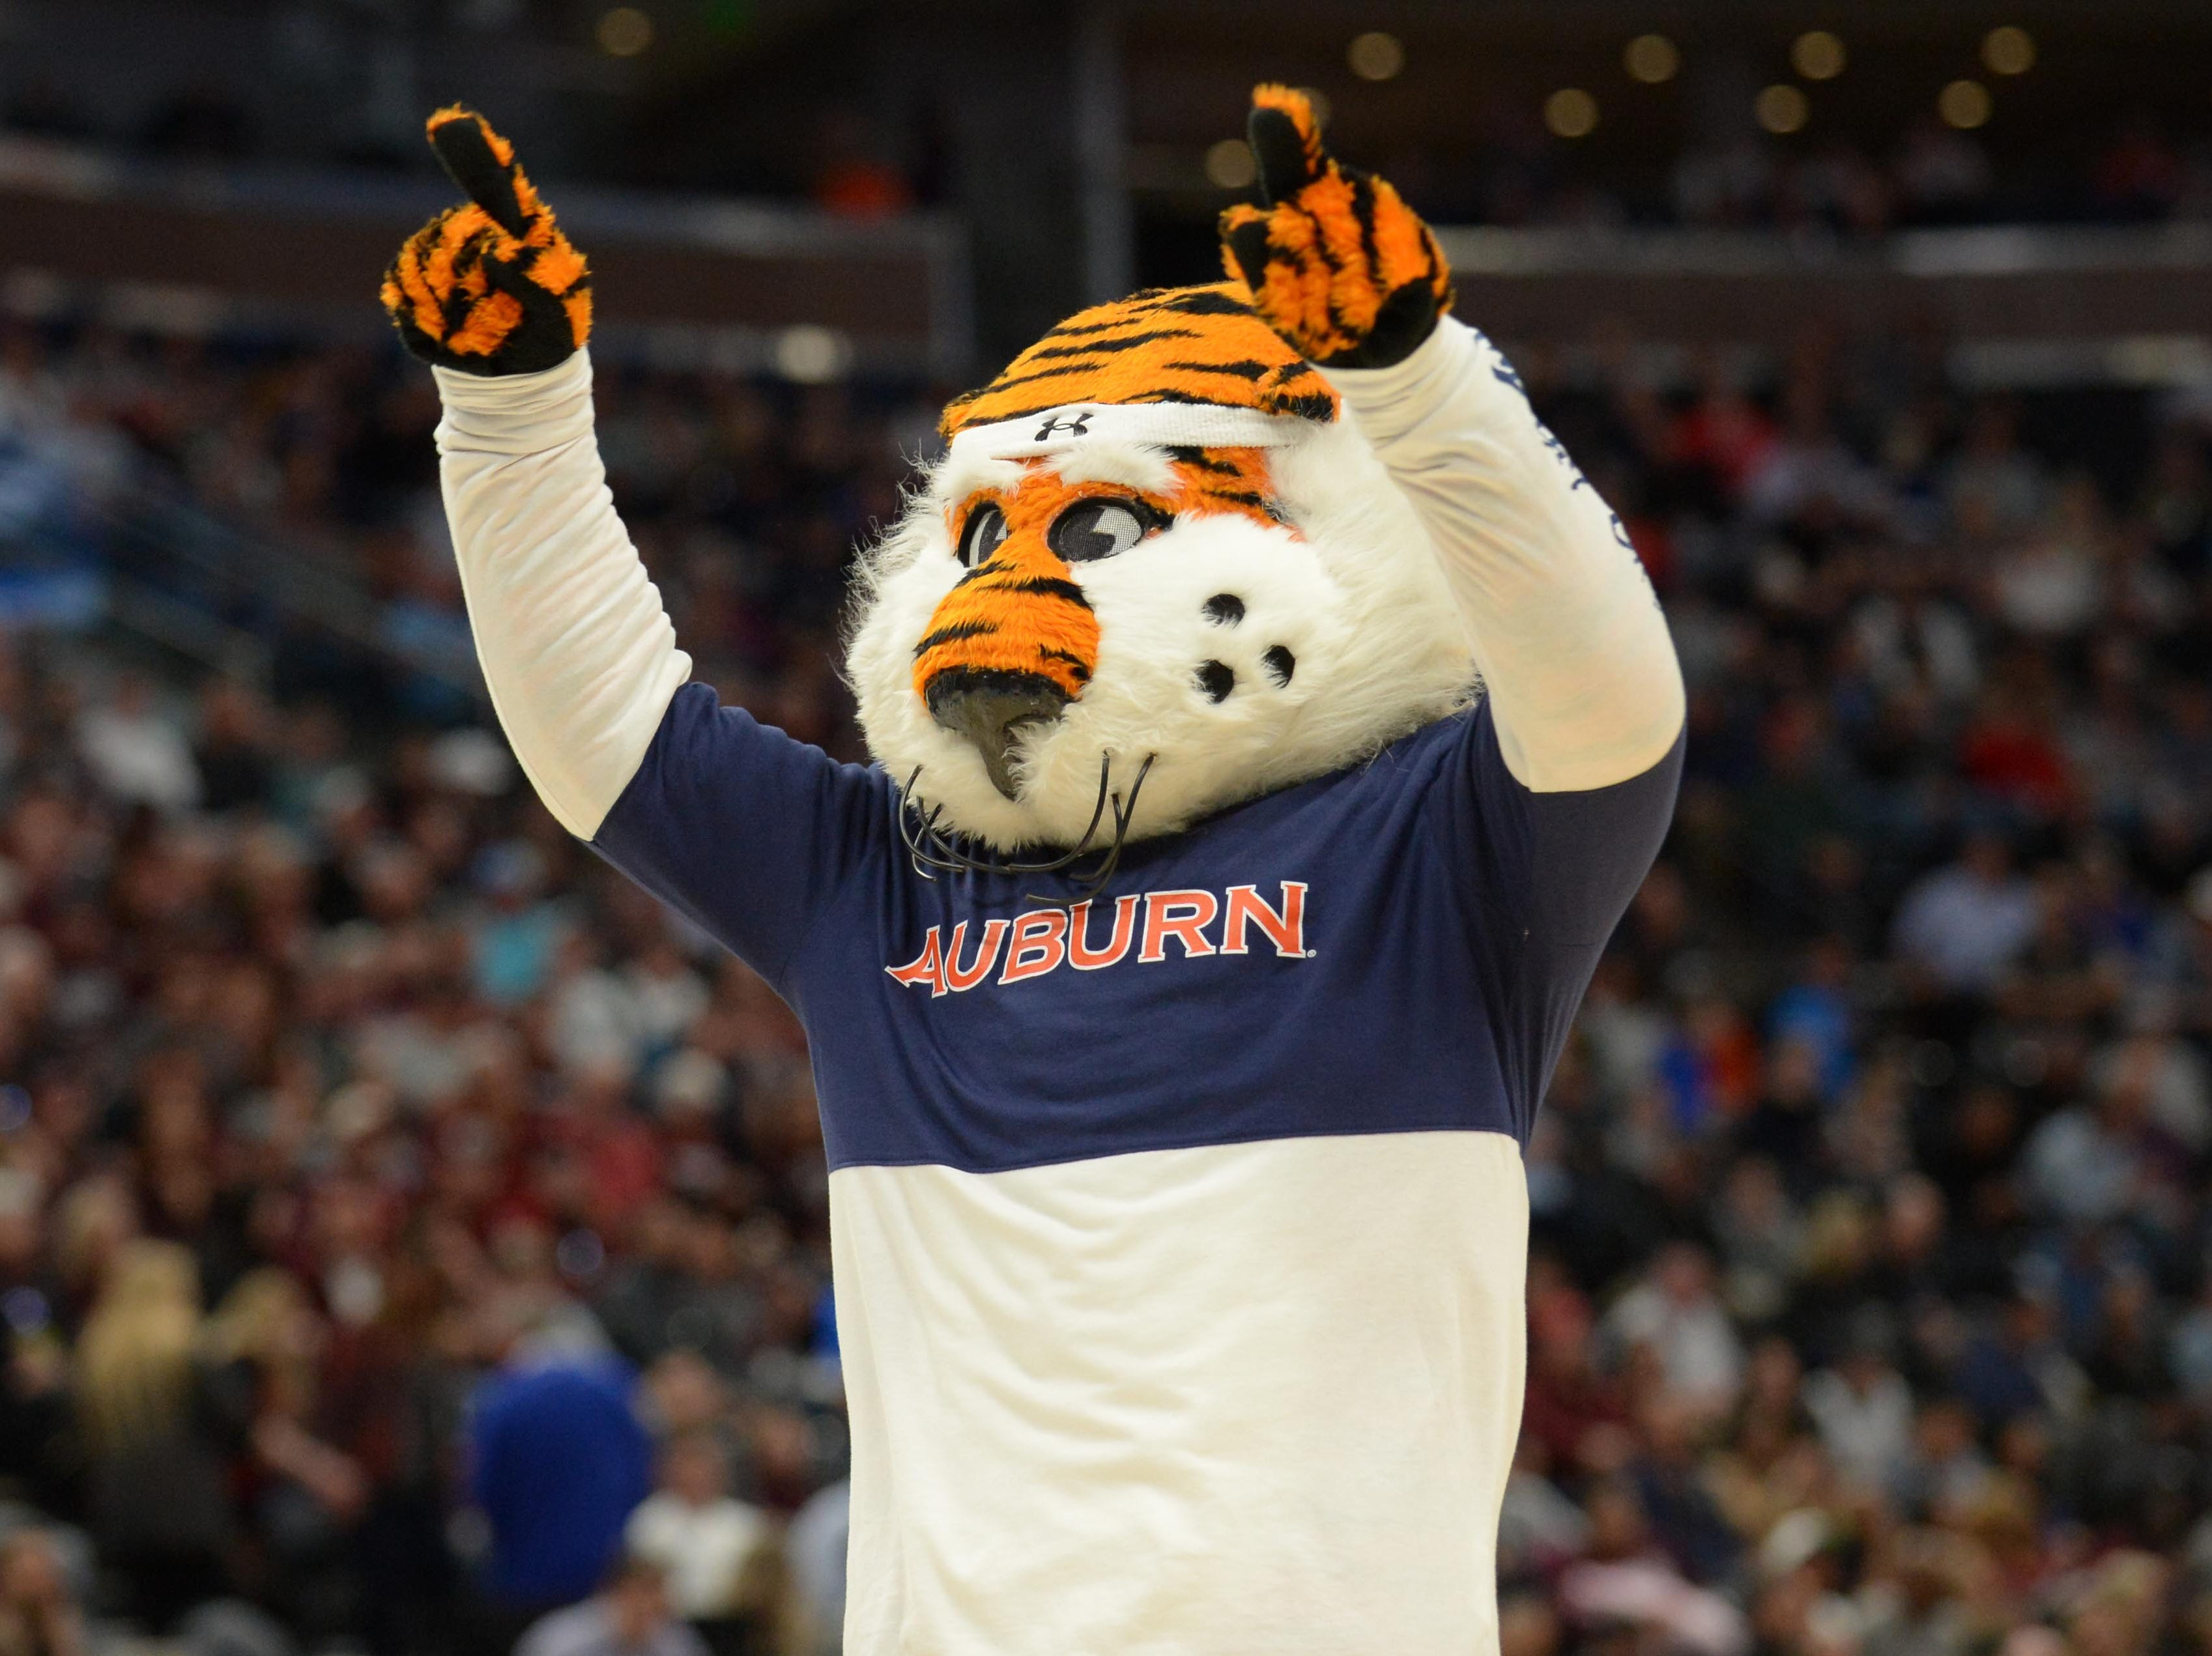 Mar 21, 2019; Salt Lake City, UT, USA; Auburn Tigers mascot Aubie performs during the first half in the first round of the 2019 NCAA Tournament against the New Mexico State Aggies at Vivint Smart Home Arena. Mandatory Credit: Gary A. Vasquez-USA TODAY Sports